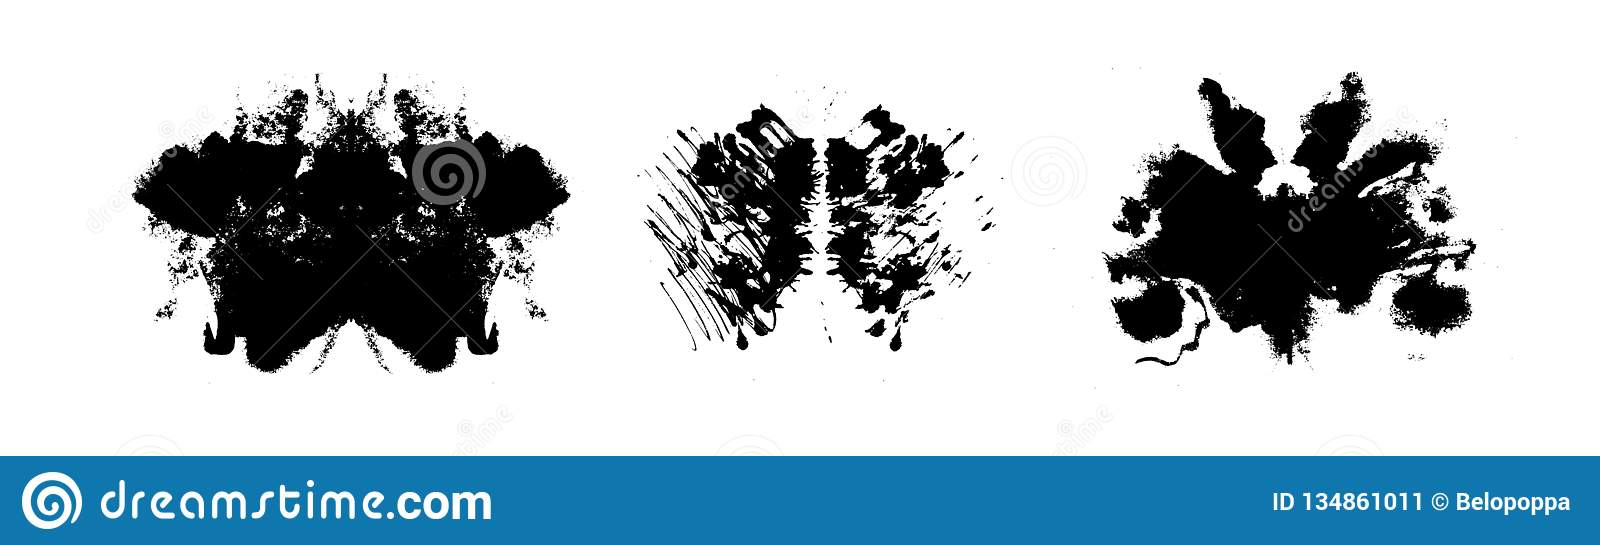 Rorschach inkblot test illustration, symmetrical abstract ink stains